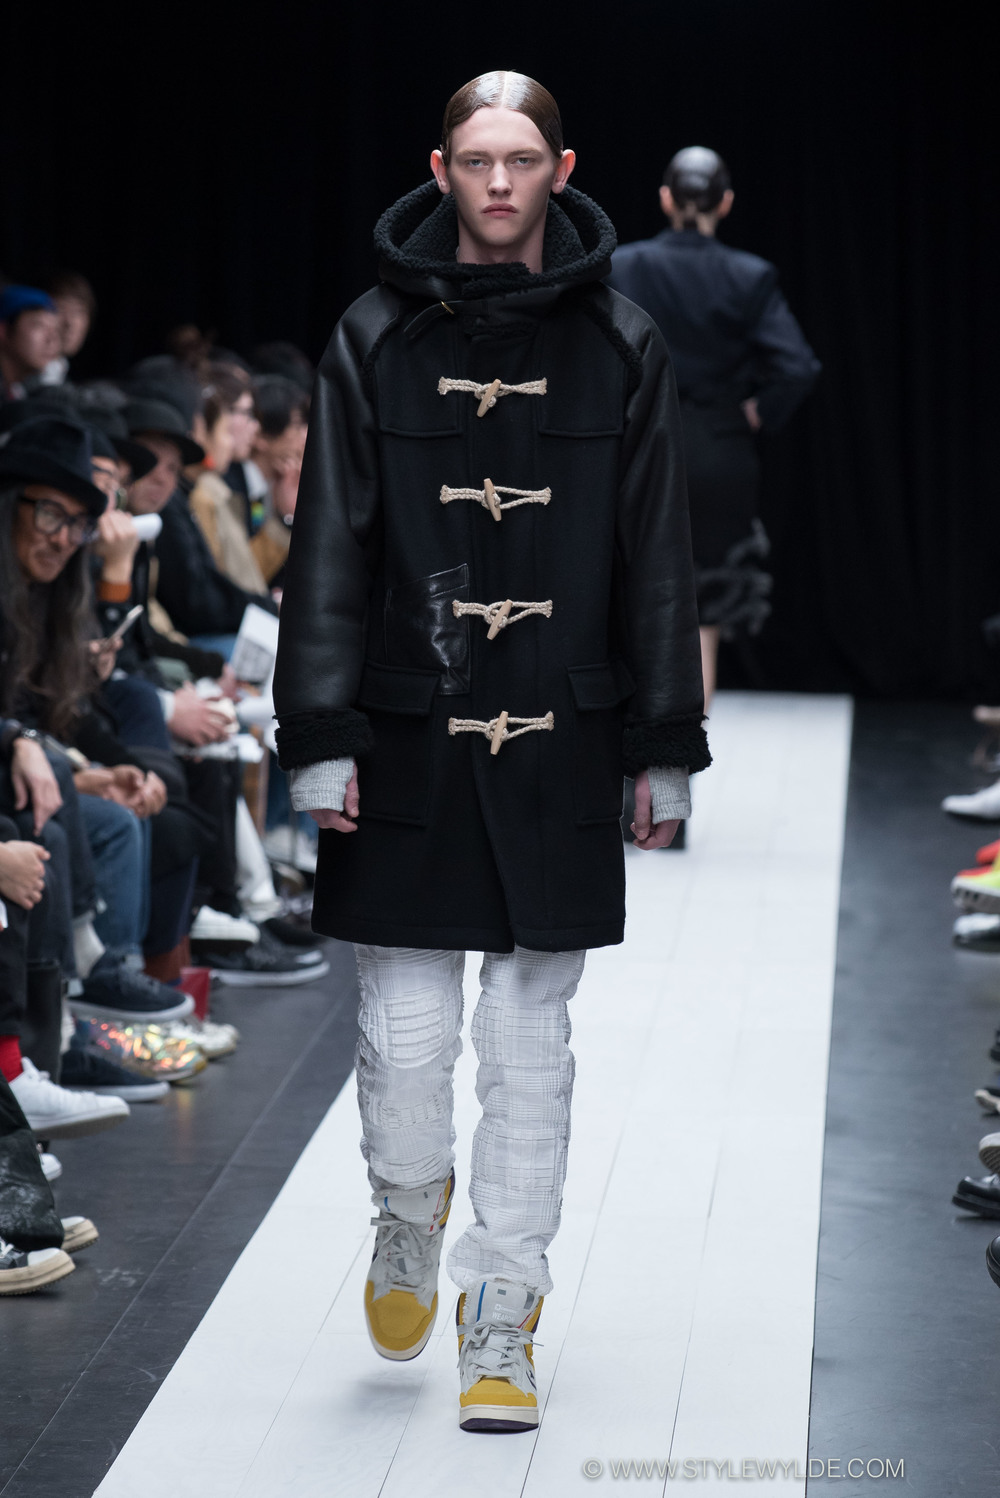 stylewyde_facetasm_AW15_edit2-3.jpg